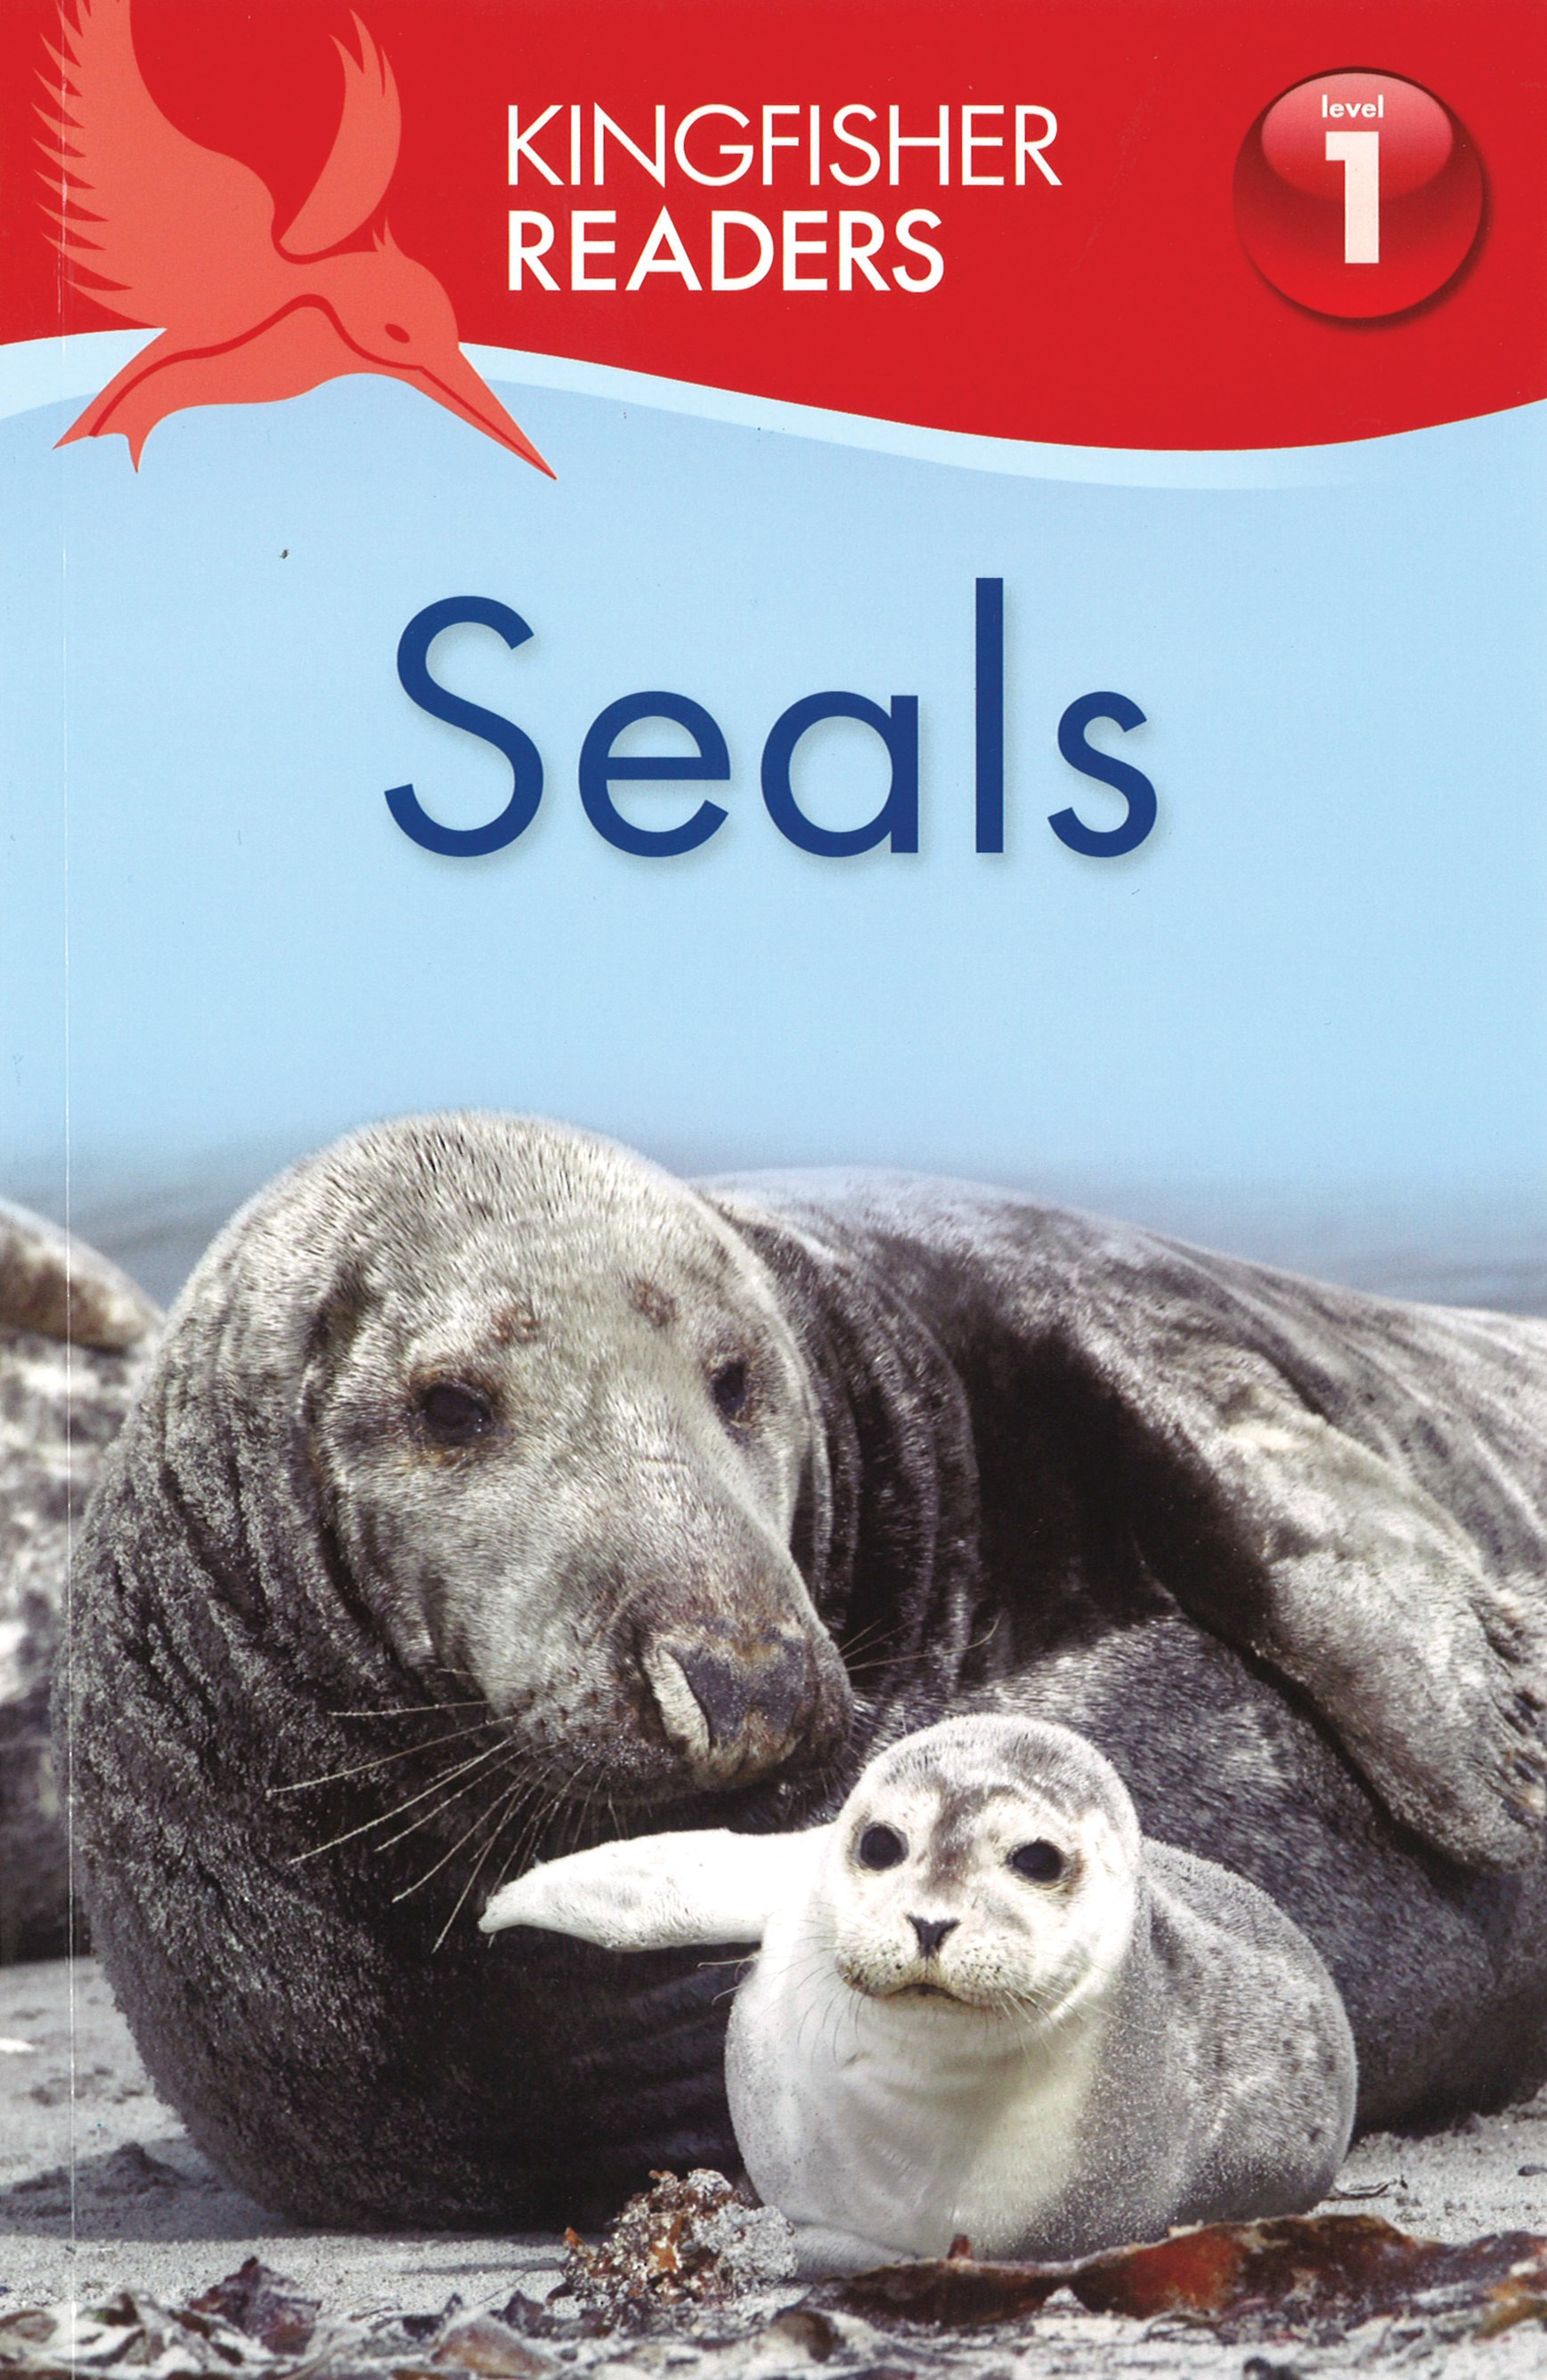 Kingfisher Readers Level 1: Seals